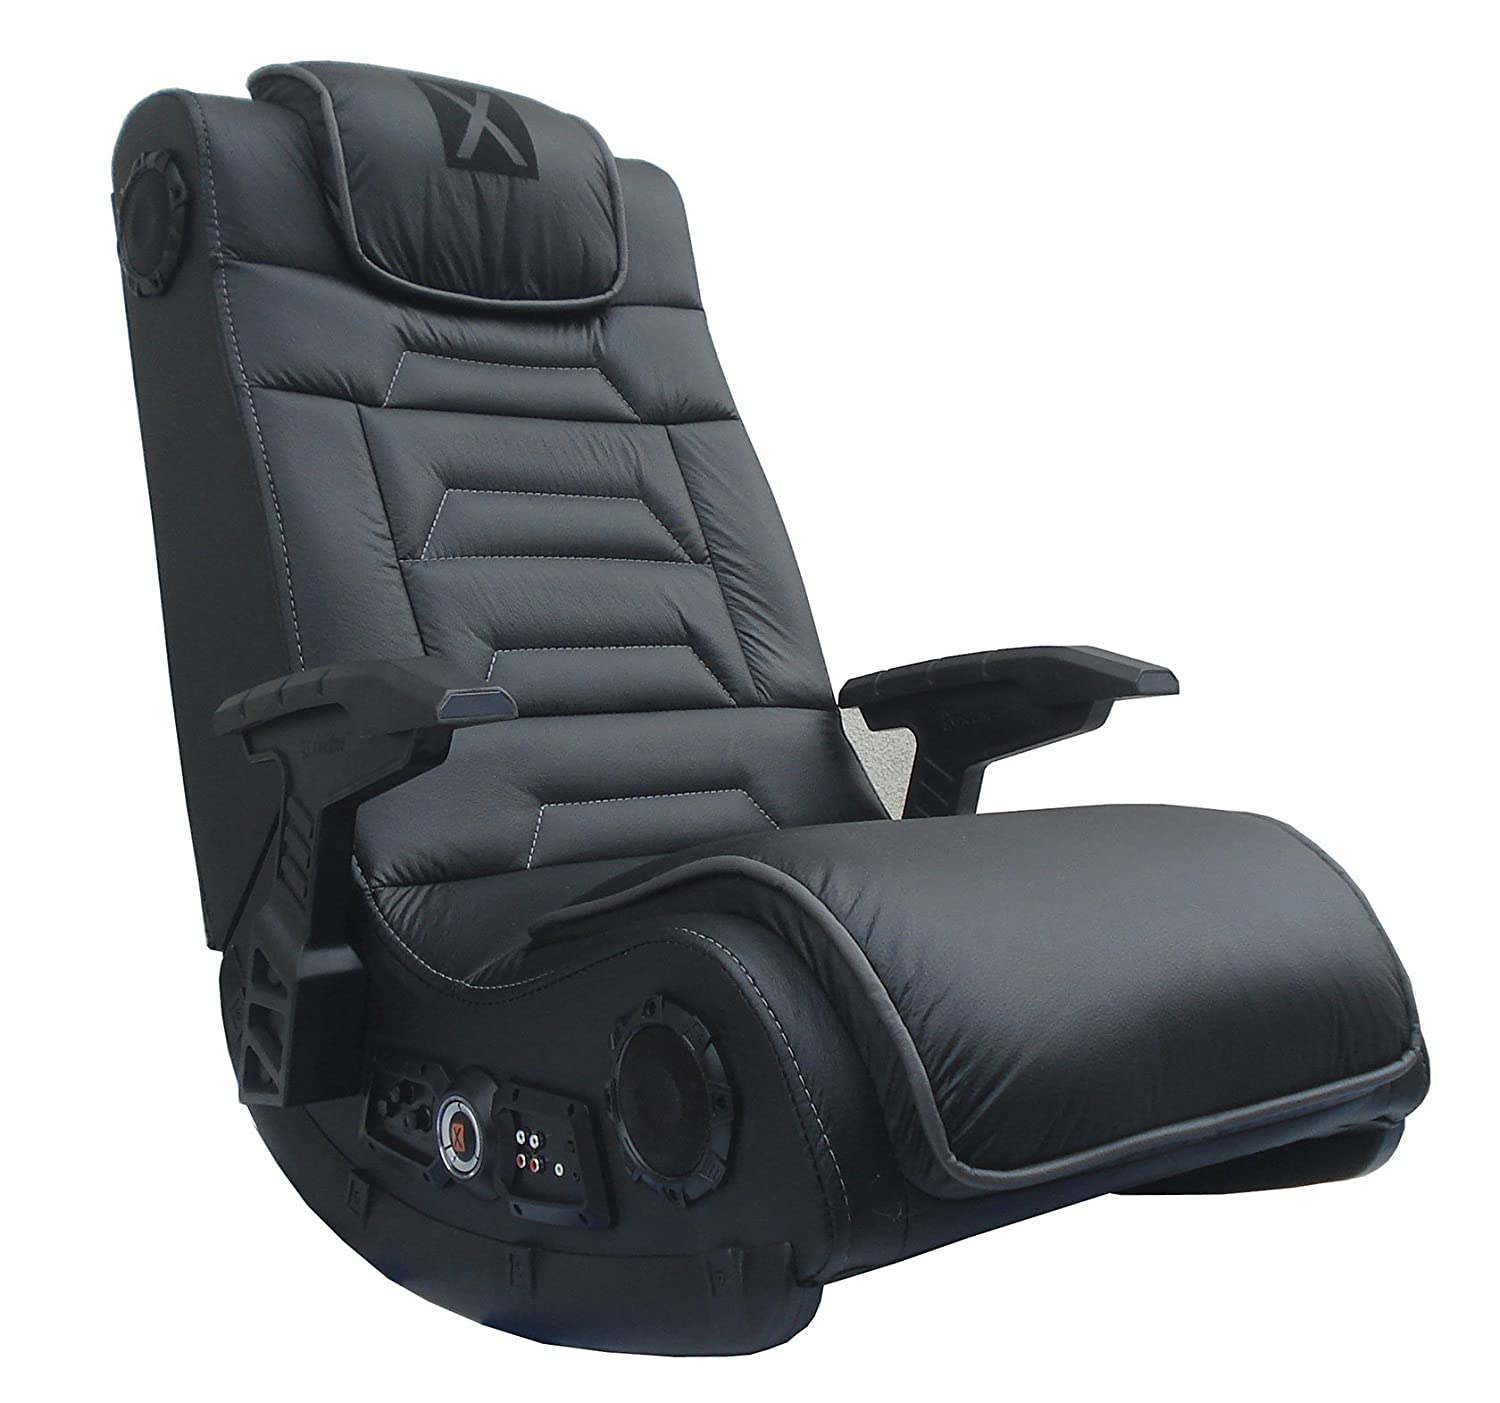 gaming chair reviews 2016 wingback covers bed bath and beyond best  ultimate buying guide